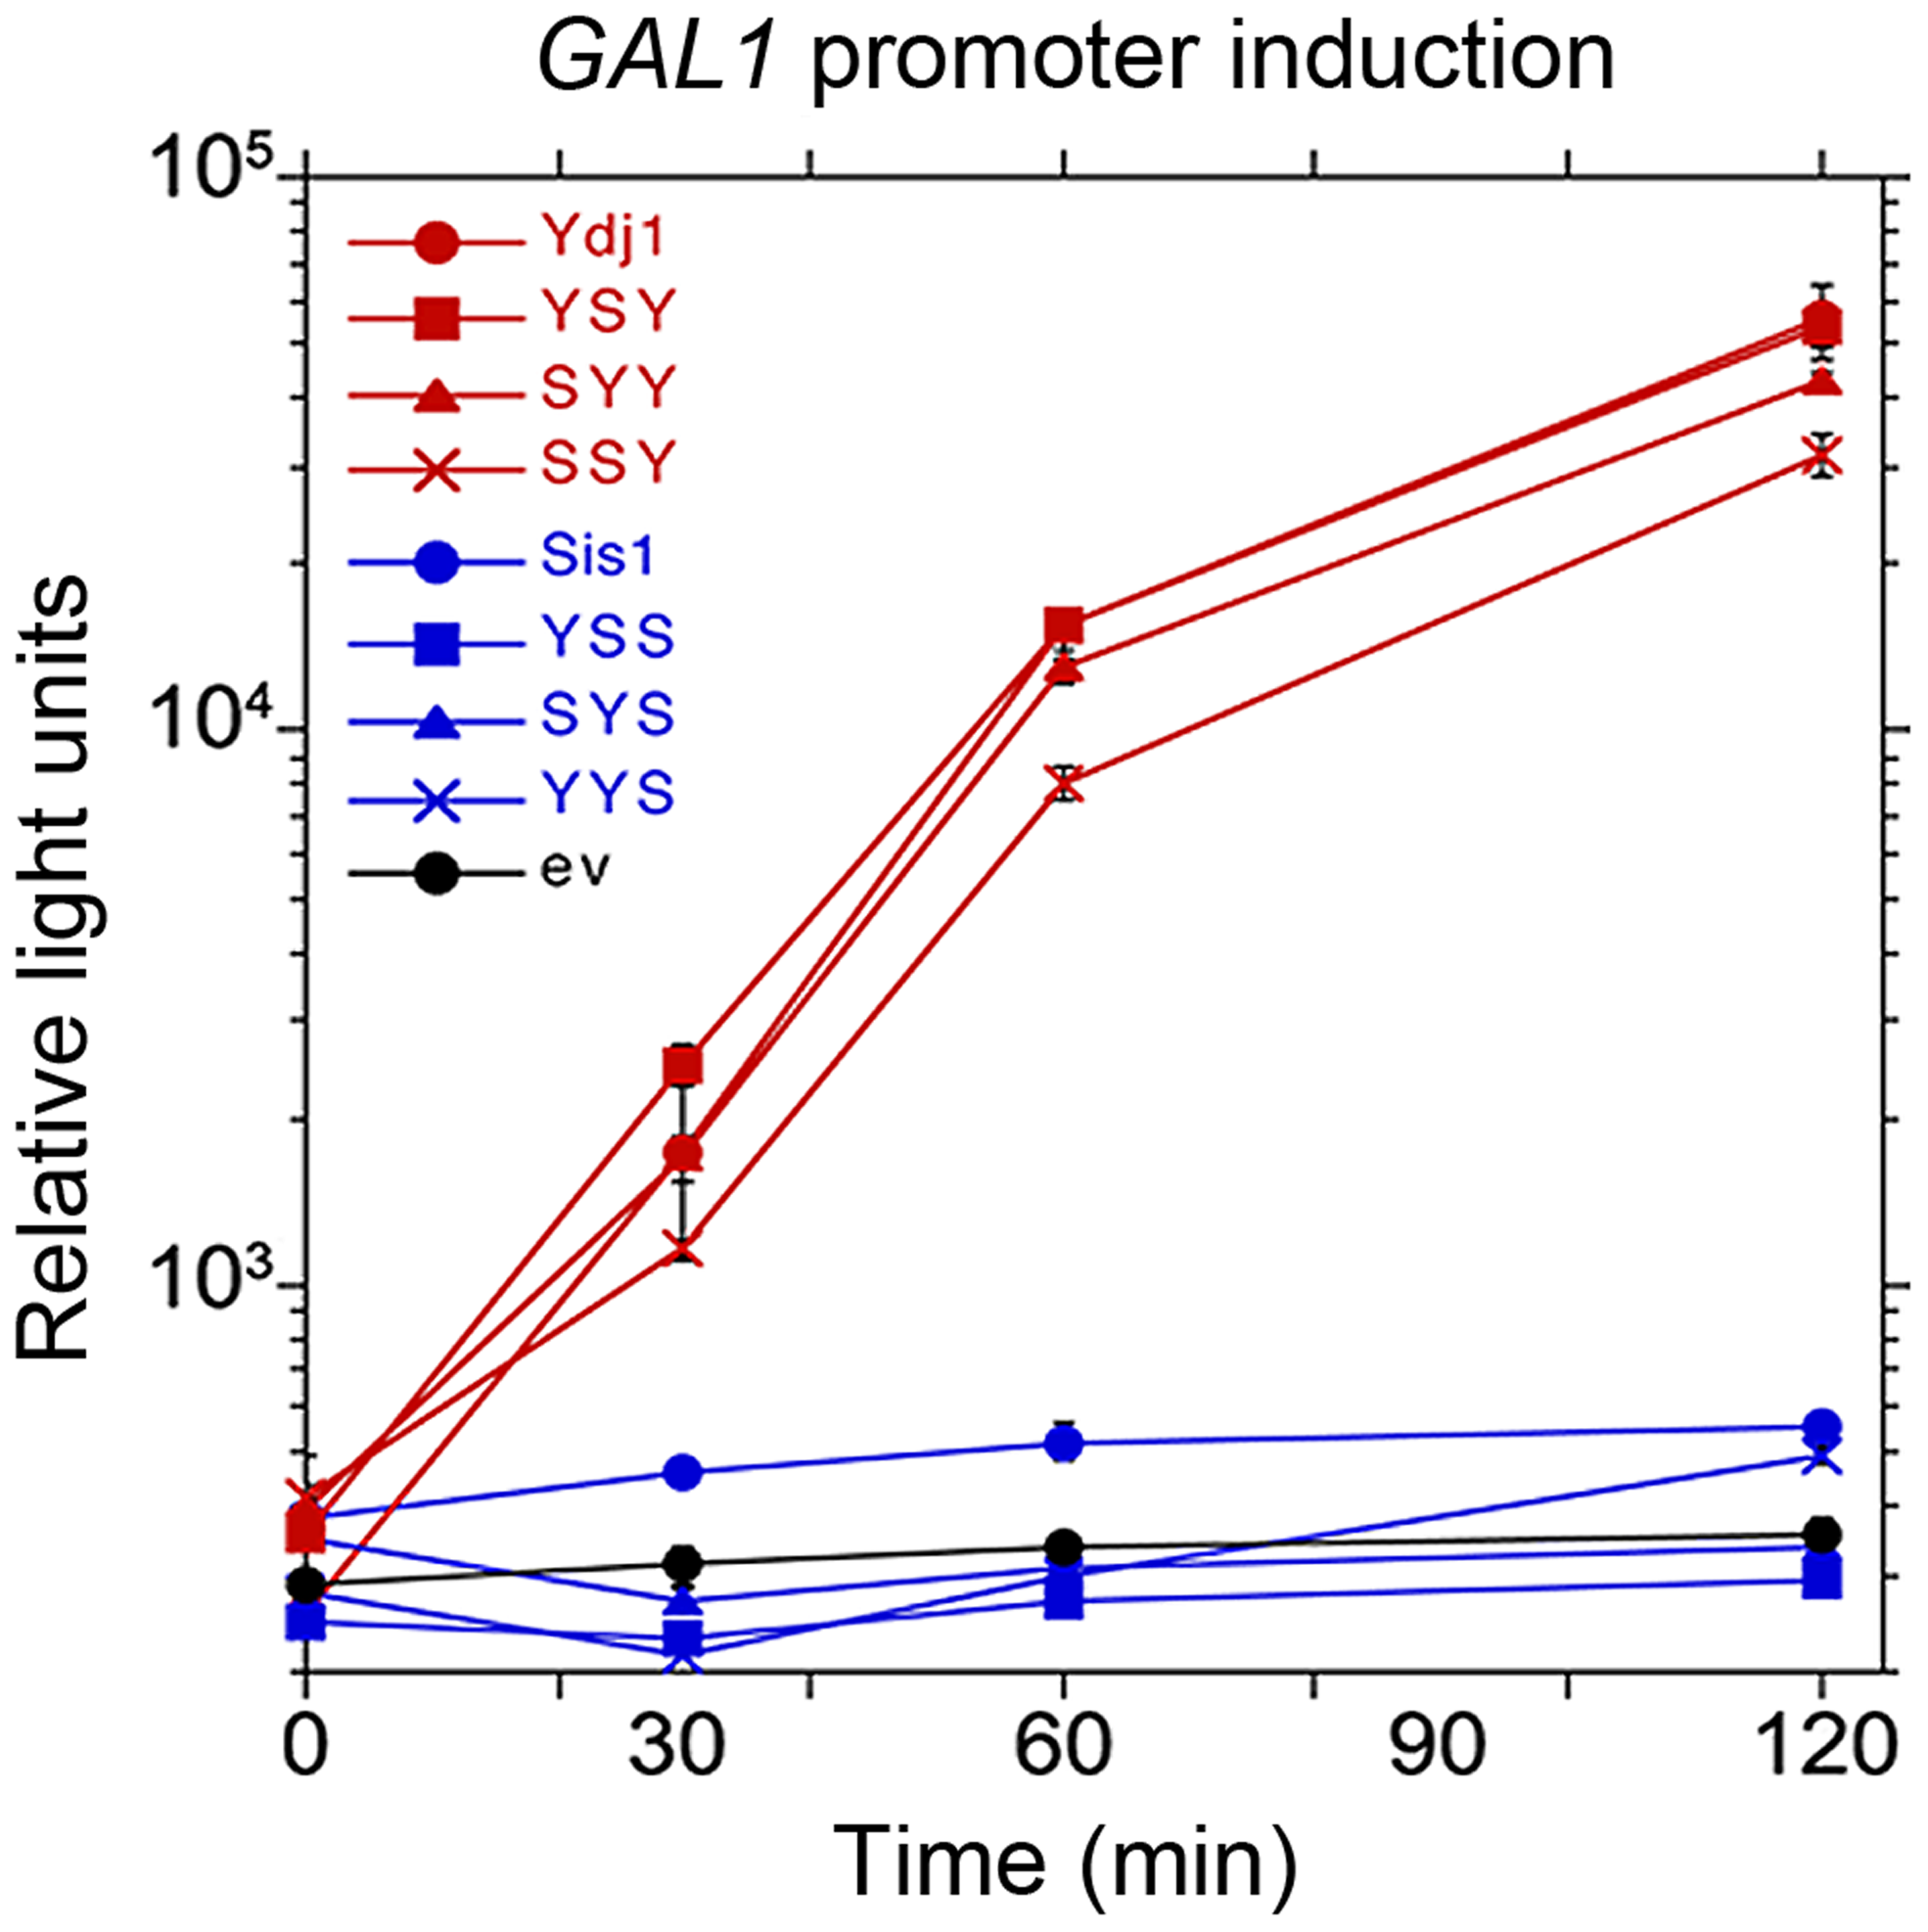 Function of Sis1/Ydj1 hybrids in galactose induction.